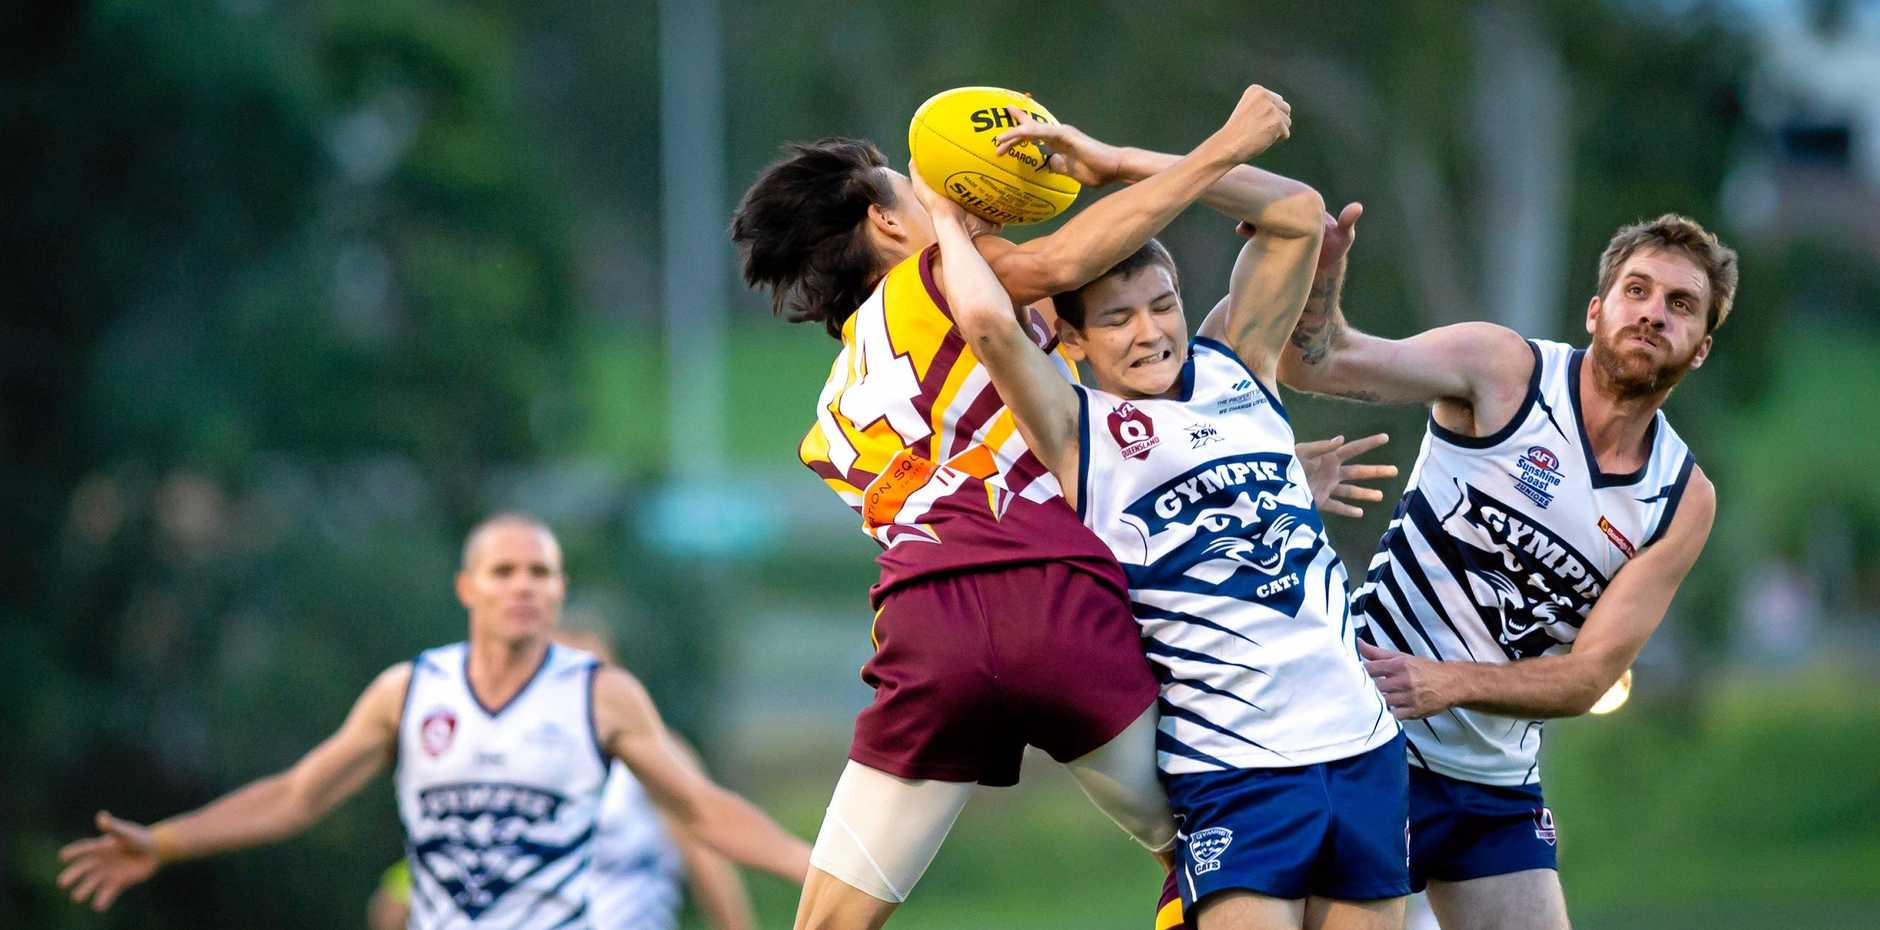 LEADING THE PACK: Kade Kent played an important role in the Gympie Cats' win over the Moreton Bay Lions on Saturday (pictured playing against Maryborough).